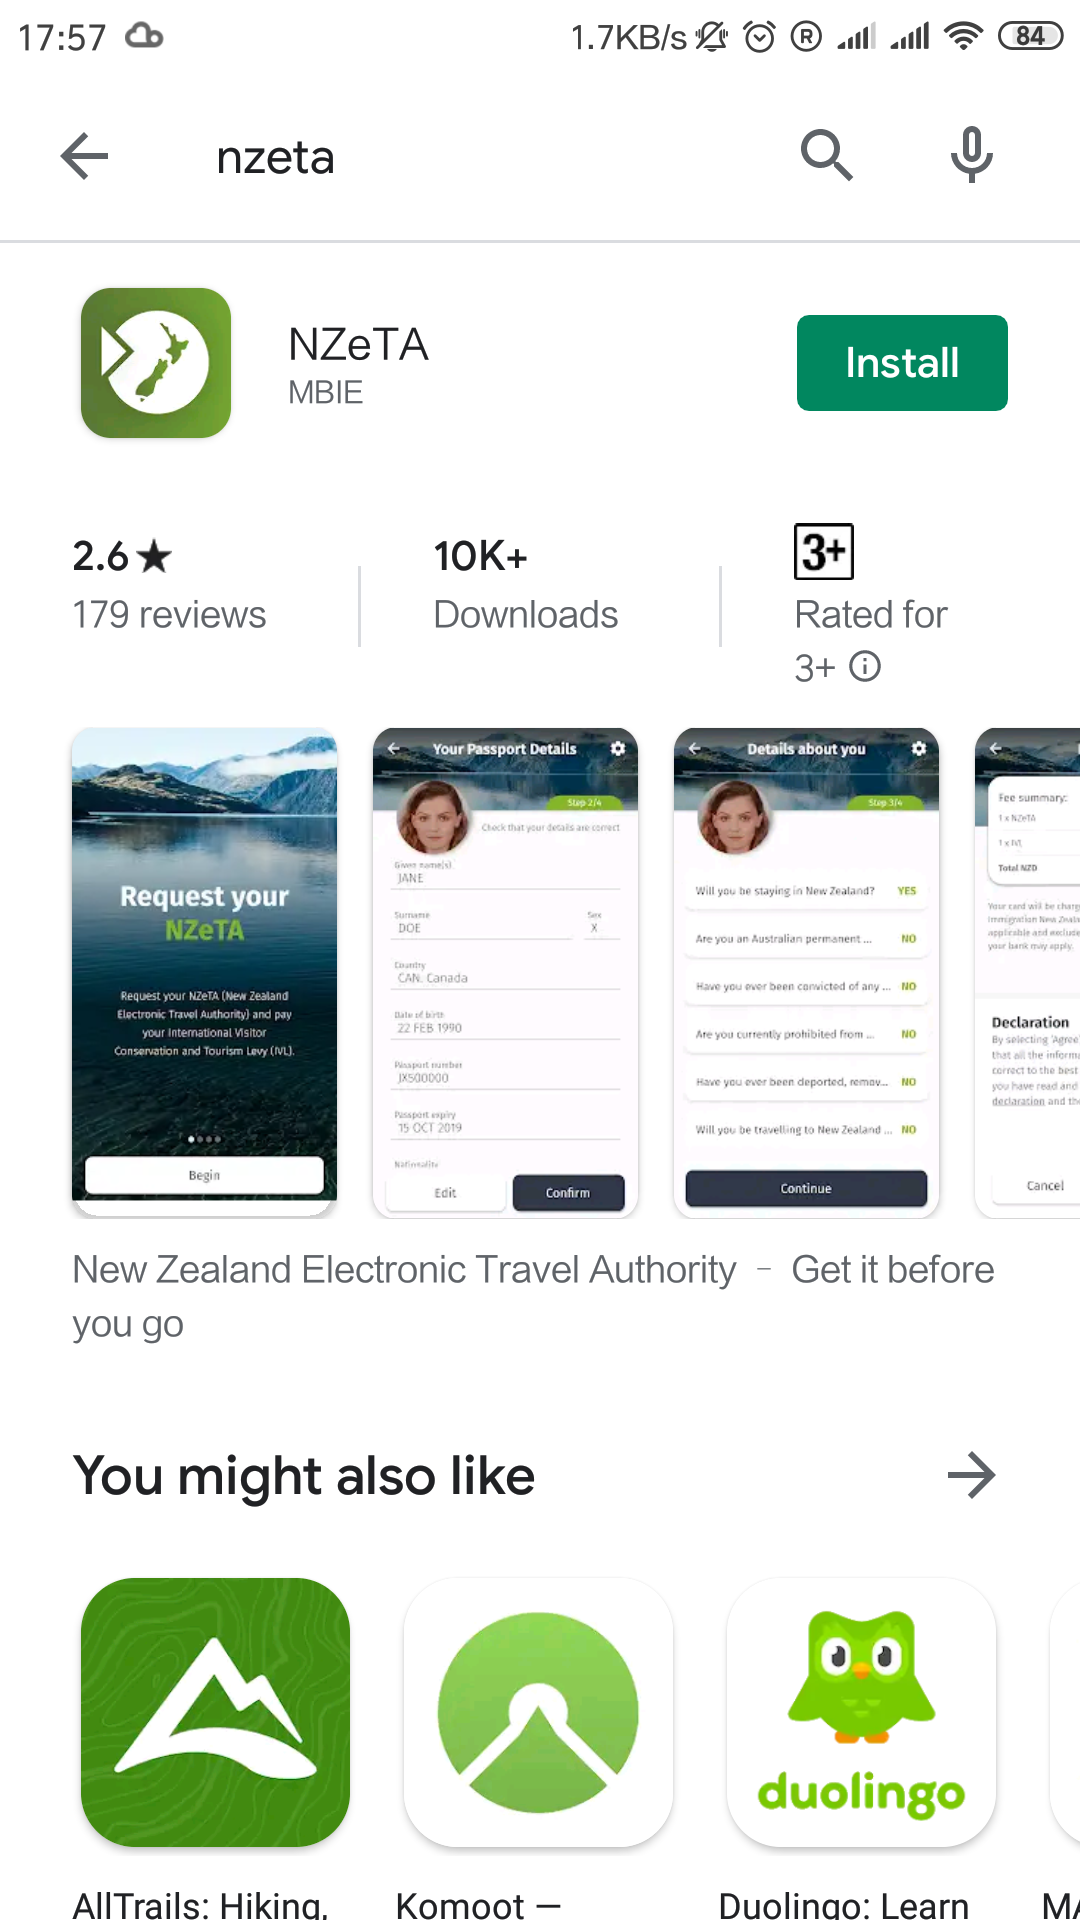 Step 1: Download the NZETA app in your app store